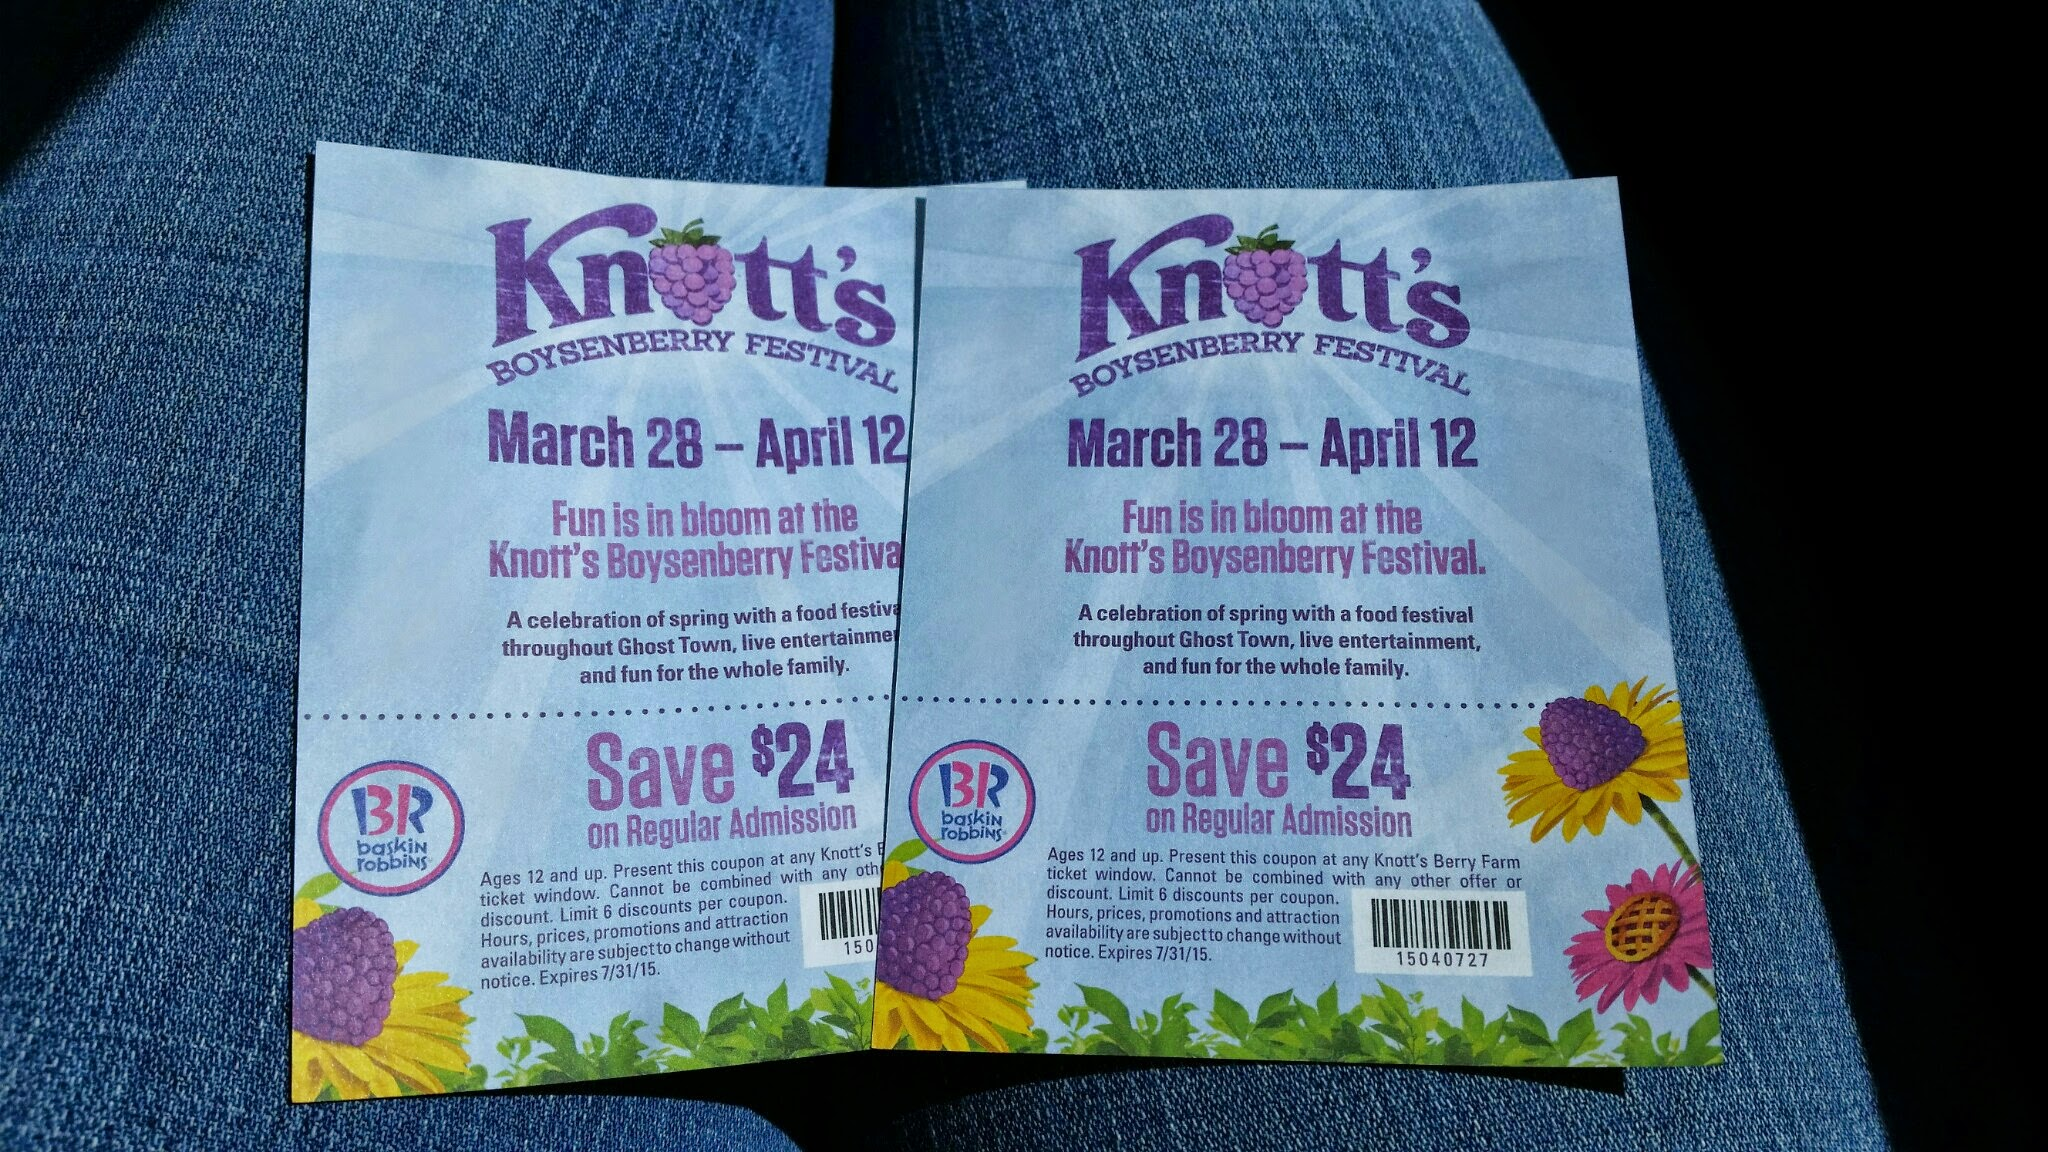 knotts berry farm discounts why pay full price knotts berry farm discounts - Knotts Berry Farm Halloween Tickets